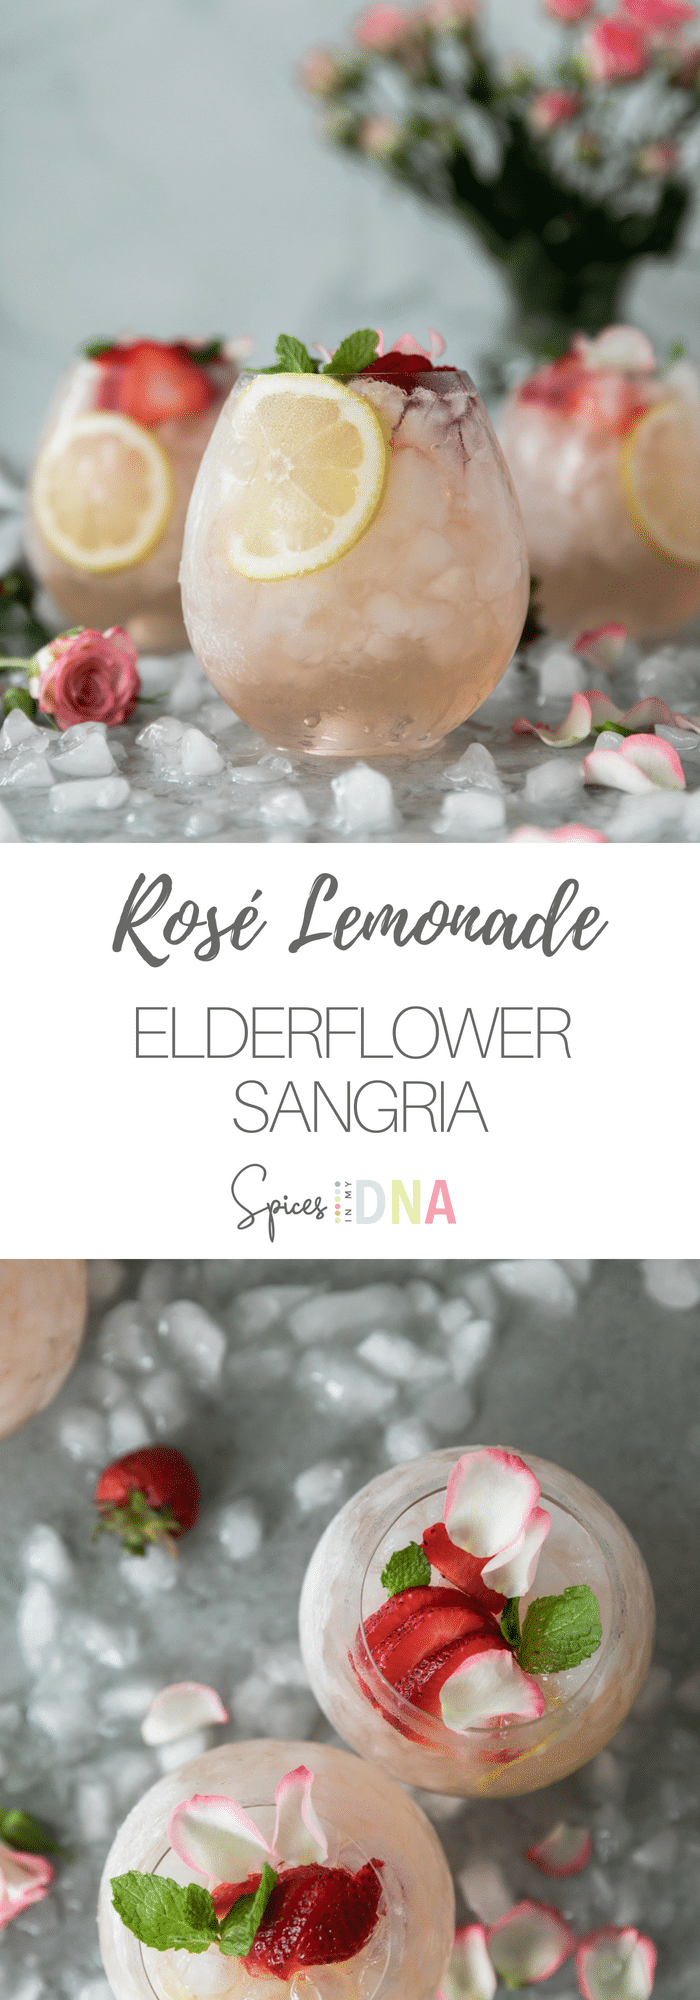 This Rosé Lemonade Elderflower Sangria is the most refreshing summer cocktail! It's super easy to make, only 5 ingredients, and is easily multiplied to serve a crowd! All you need is dry rosé, freshly squeezed lemon juice, a touch of simple syrup for sweetness, elderflower liquer, and a splash of seltzer. Absolutely delicious and dangerously good! #cocktail #rosé #sangria #summer